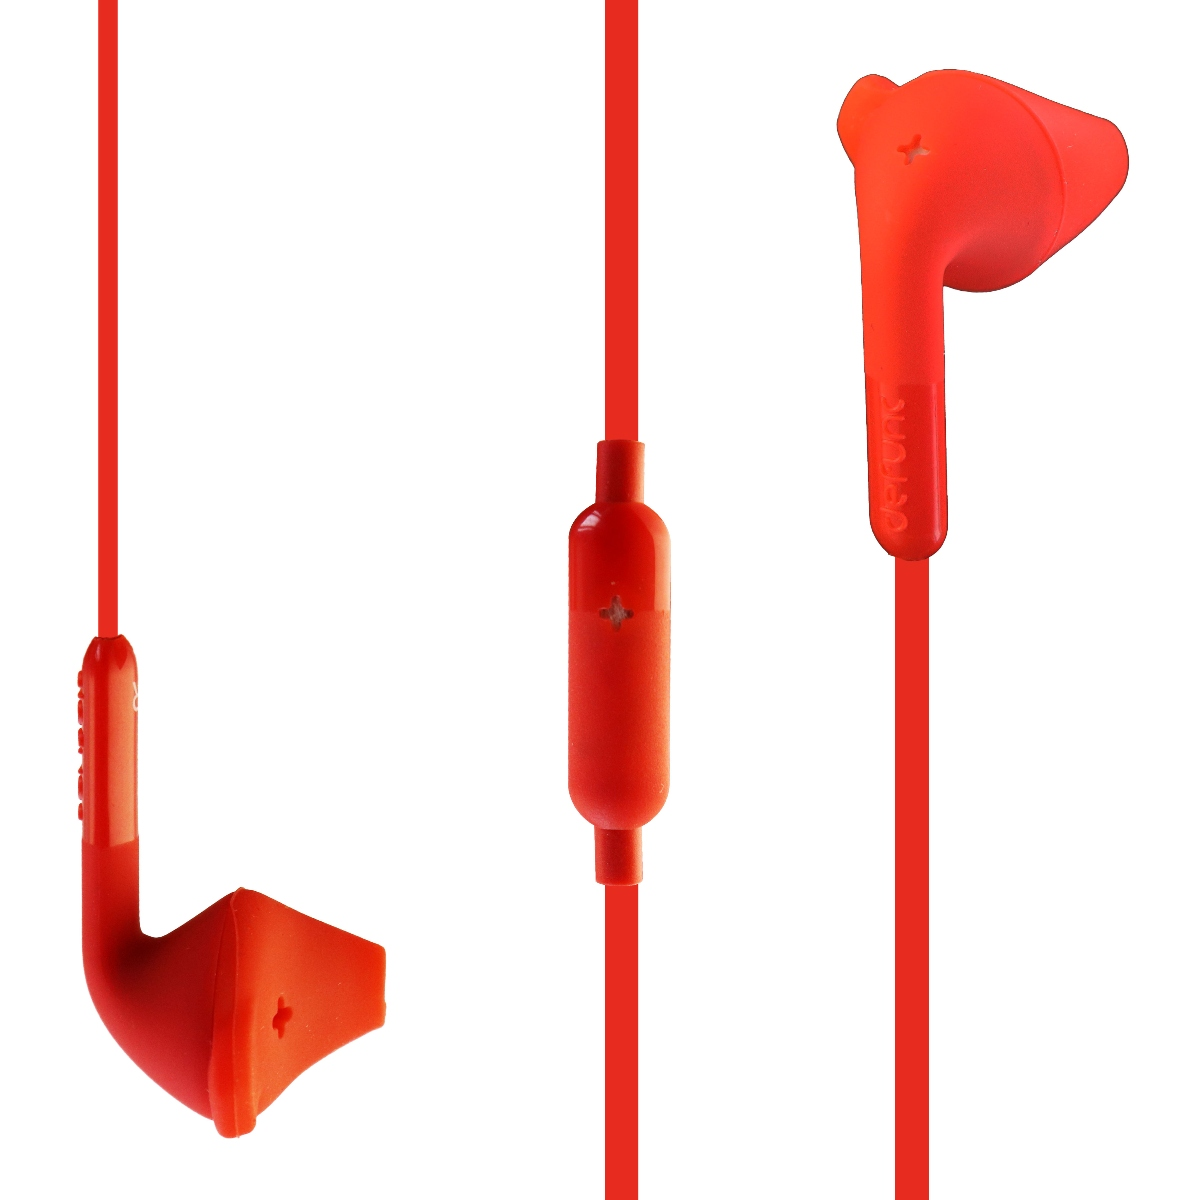 Defunc Hybrid HIFI Drivers Ambient Sound Awareness Wired In Ear Headphones Red (Refurbished)